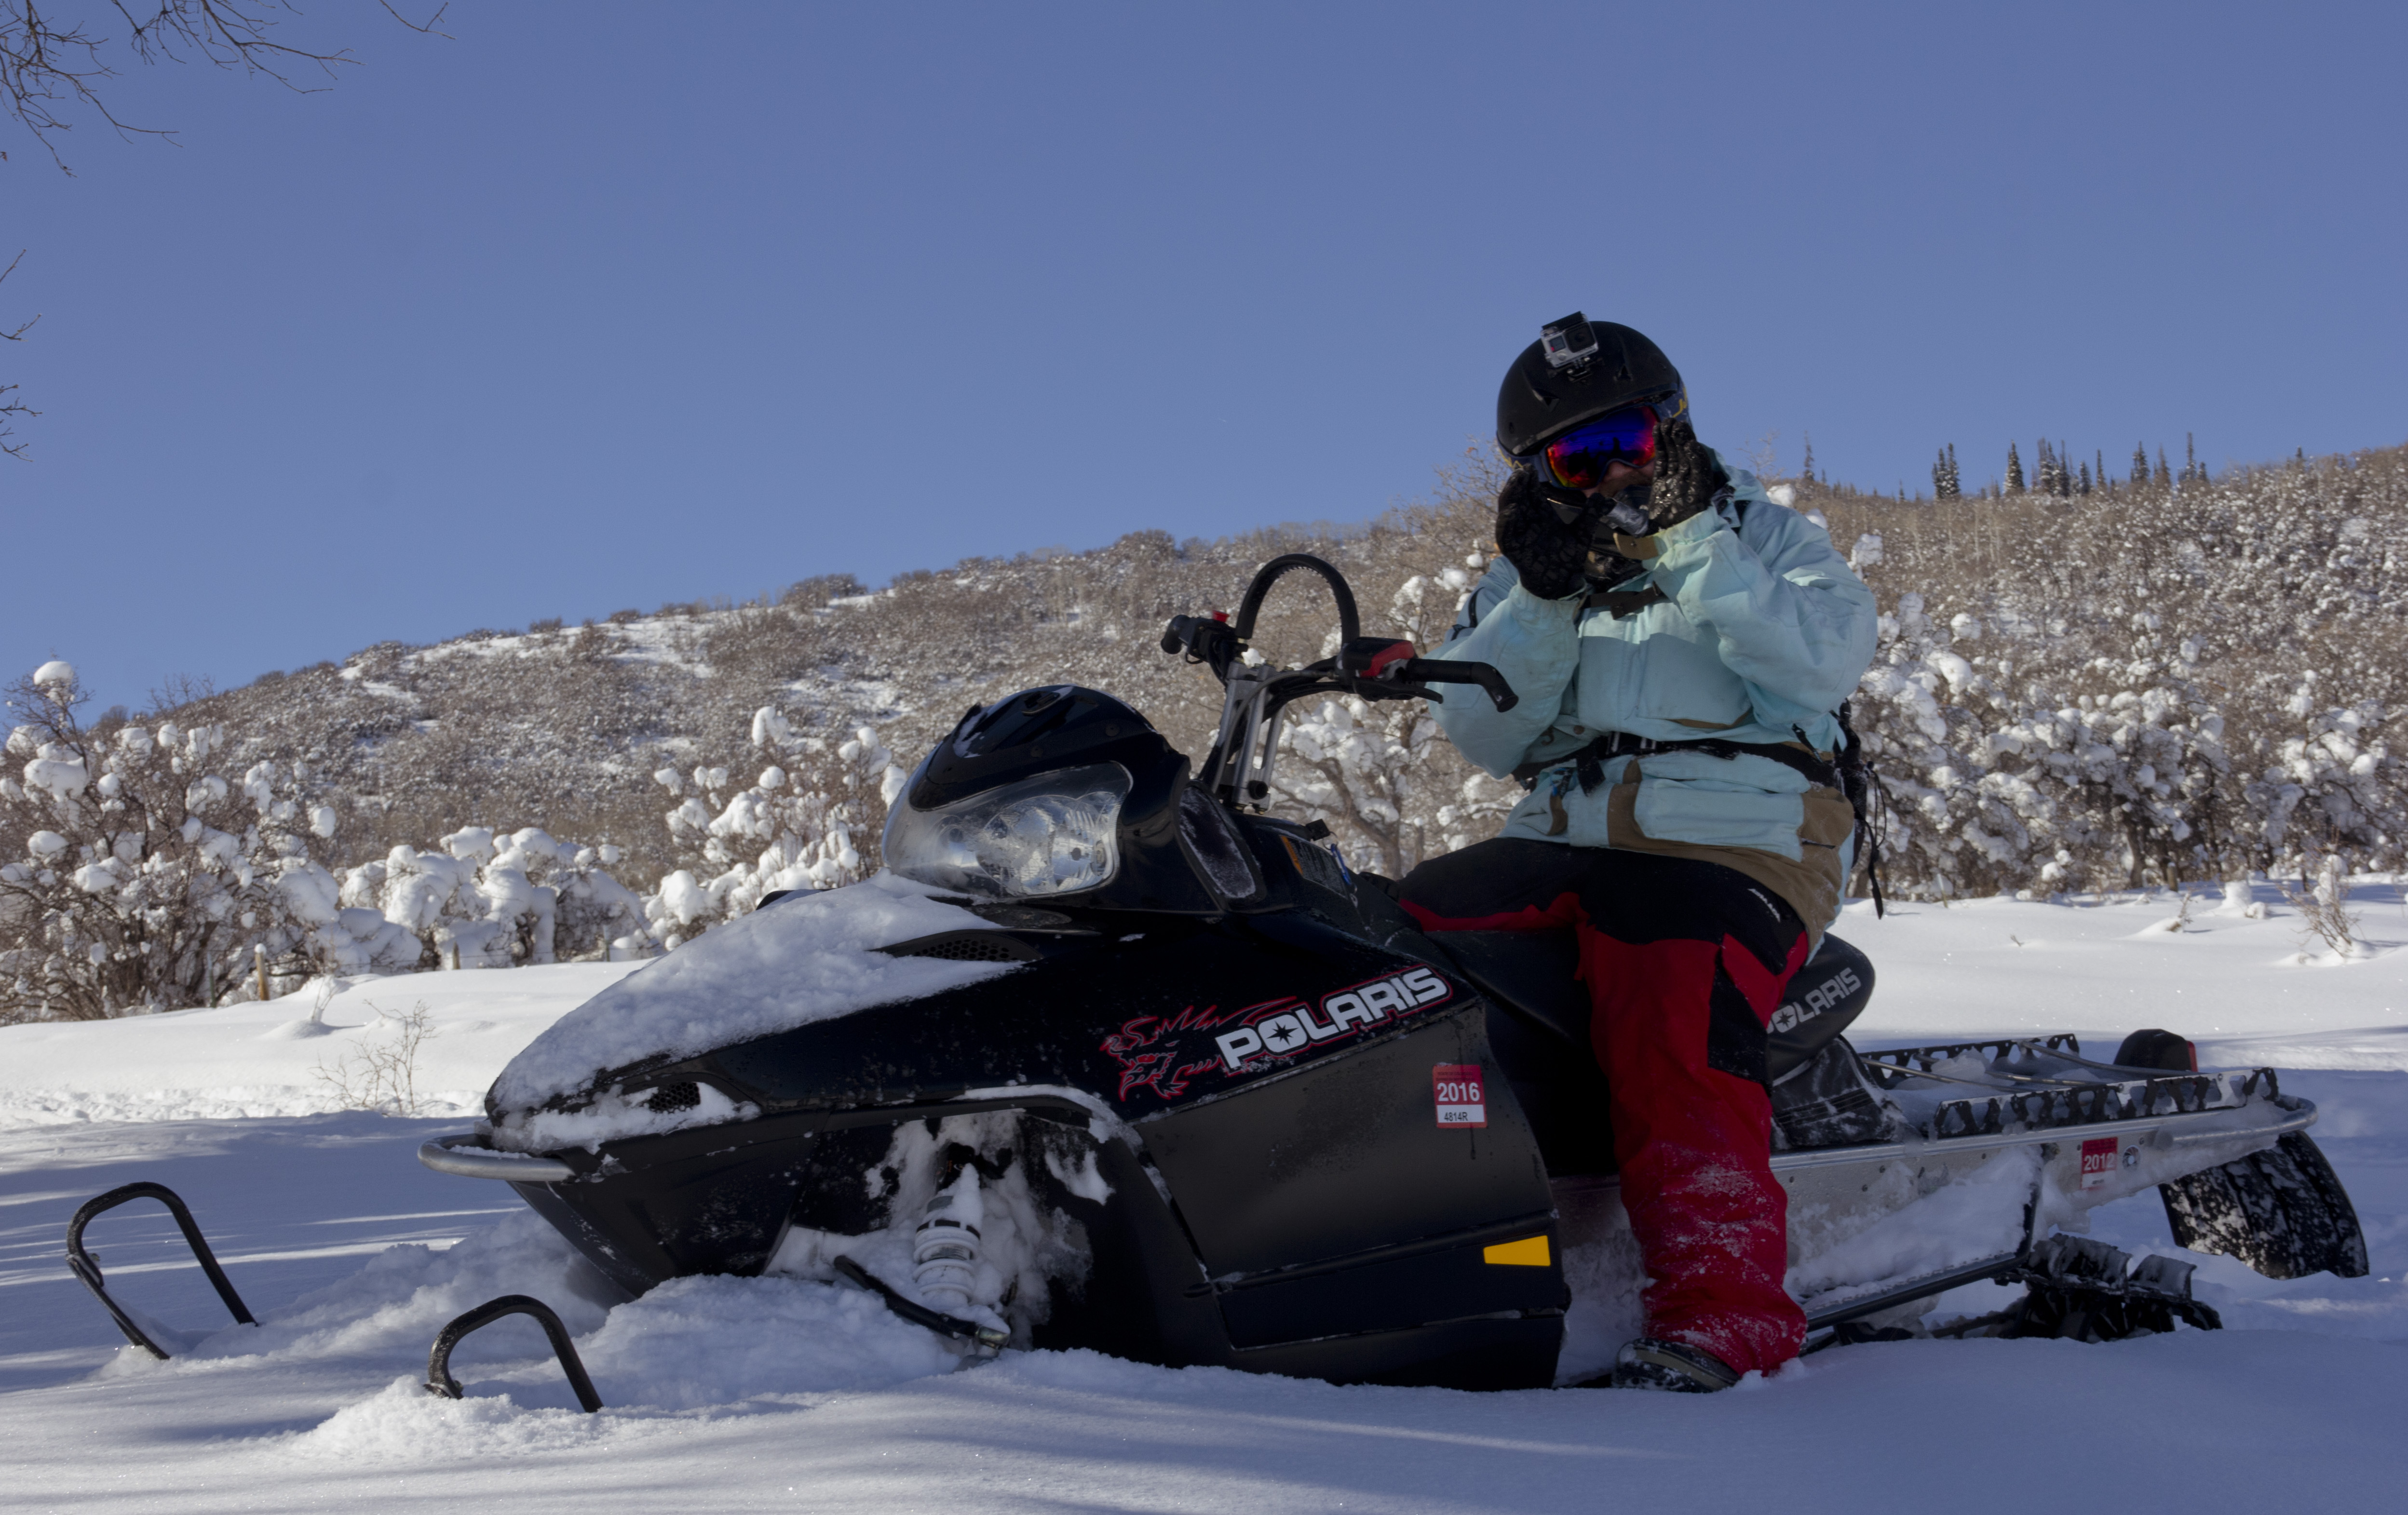 Snowmobiling on the last day of 2015 with Jake Nelson sitting in the shadows